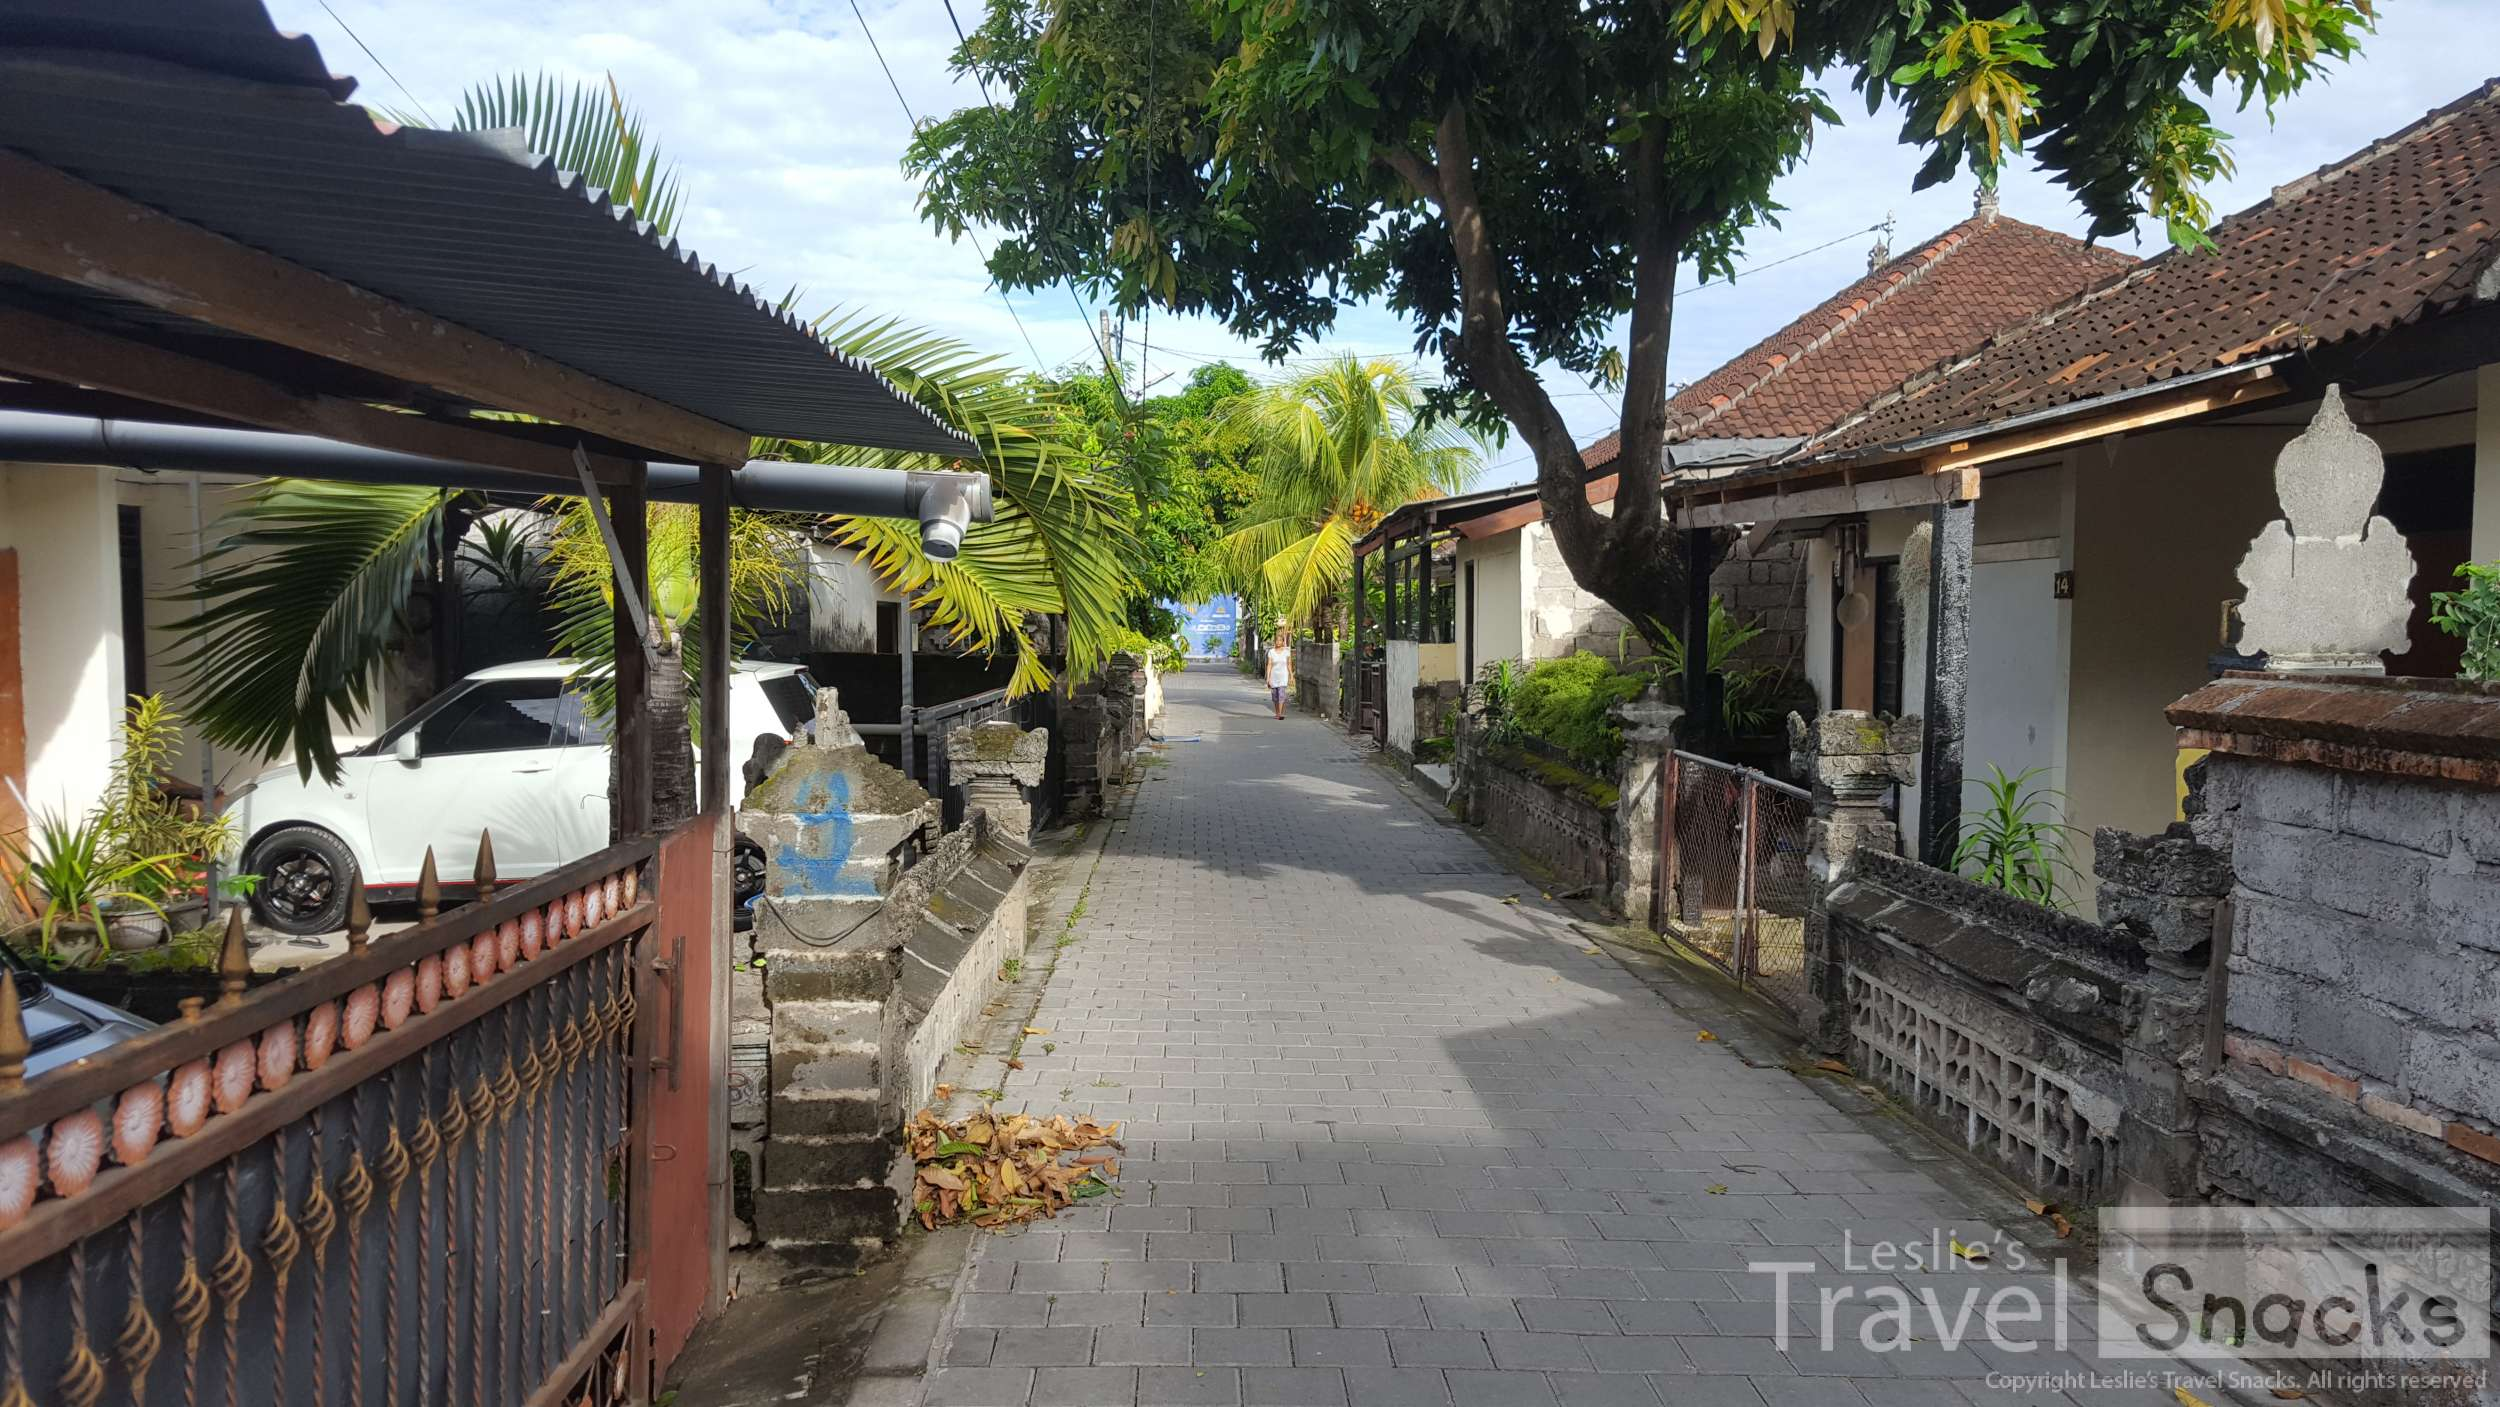 Even being just a couple of blocks from the international airport at Denpasar, the roads to walk there are this small!